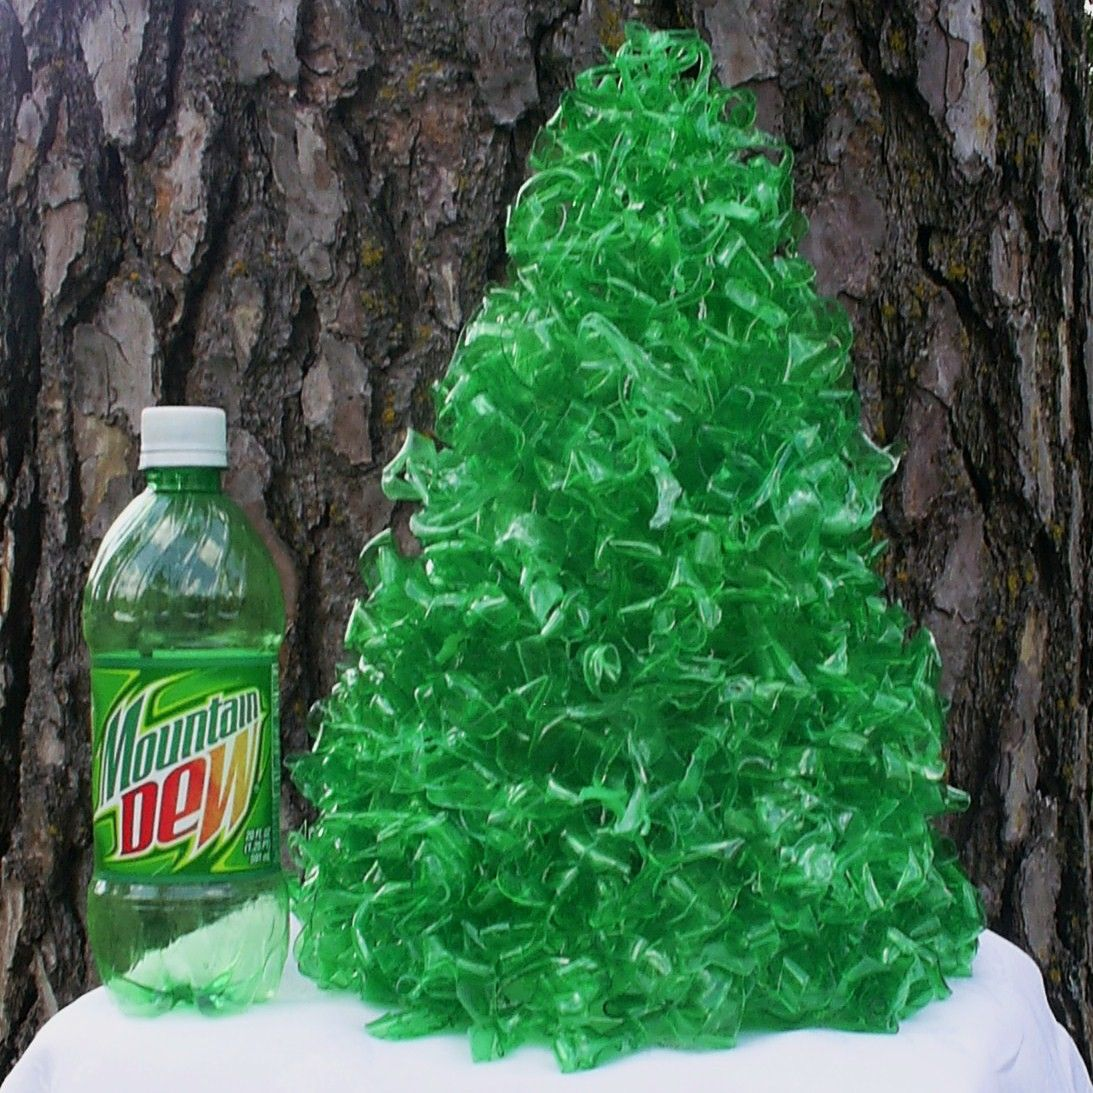 Christmas Decorations Made Out Of Plastic Bottles Made From Recycled Plastic Bottles Recycling  Pinterest